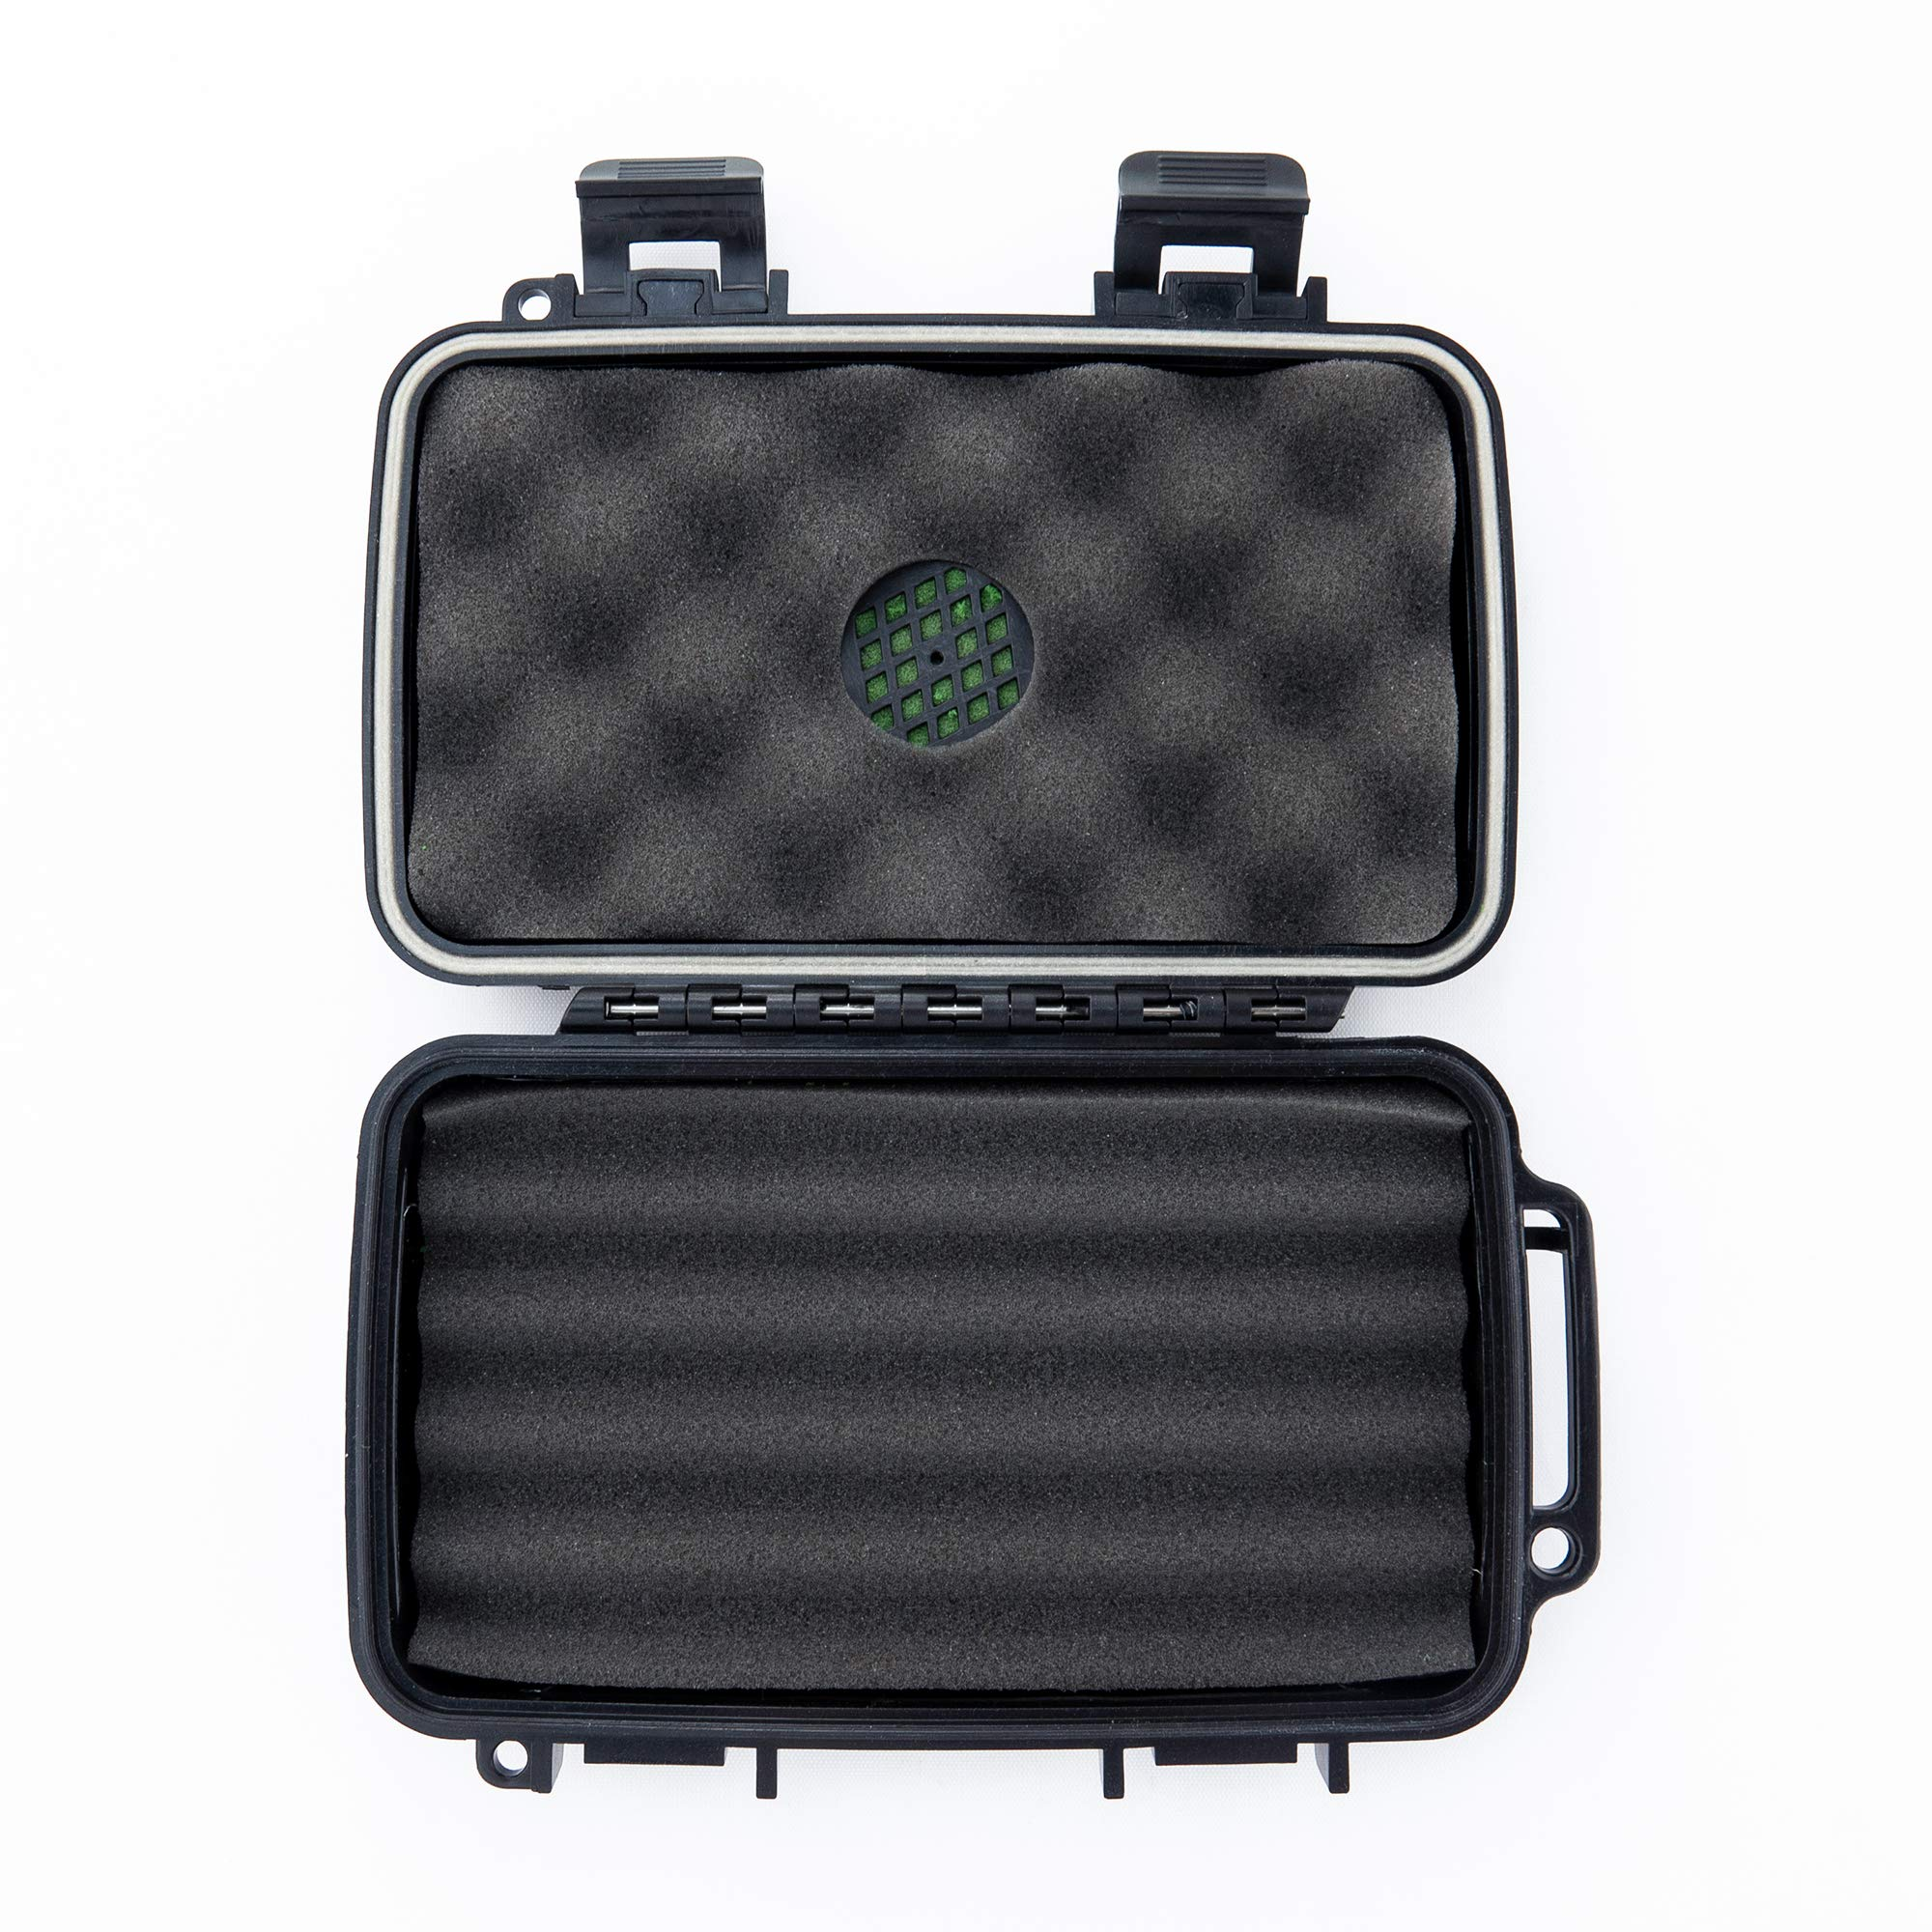 Sir Drake's Hard Plastic Travel Humidor Cigar Case - Premium Rugged Hard Shell Case - Built in Foam Humidor and Holds Up to 5 Cigars (4'' x 6'')